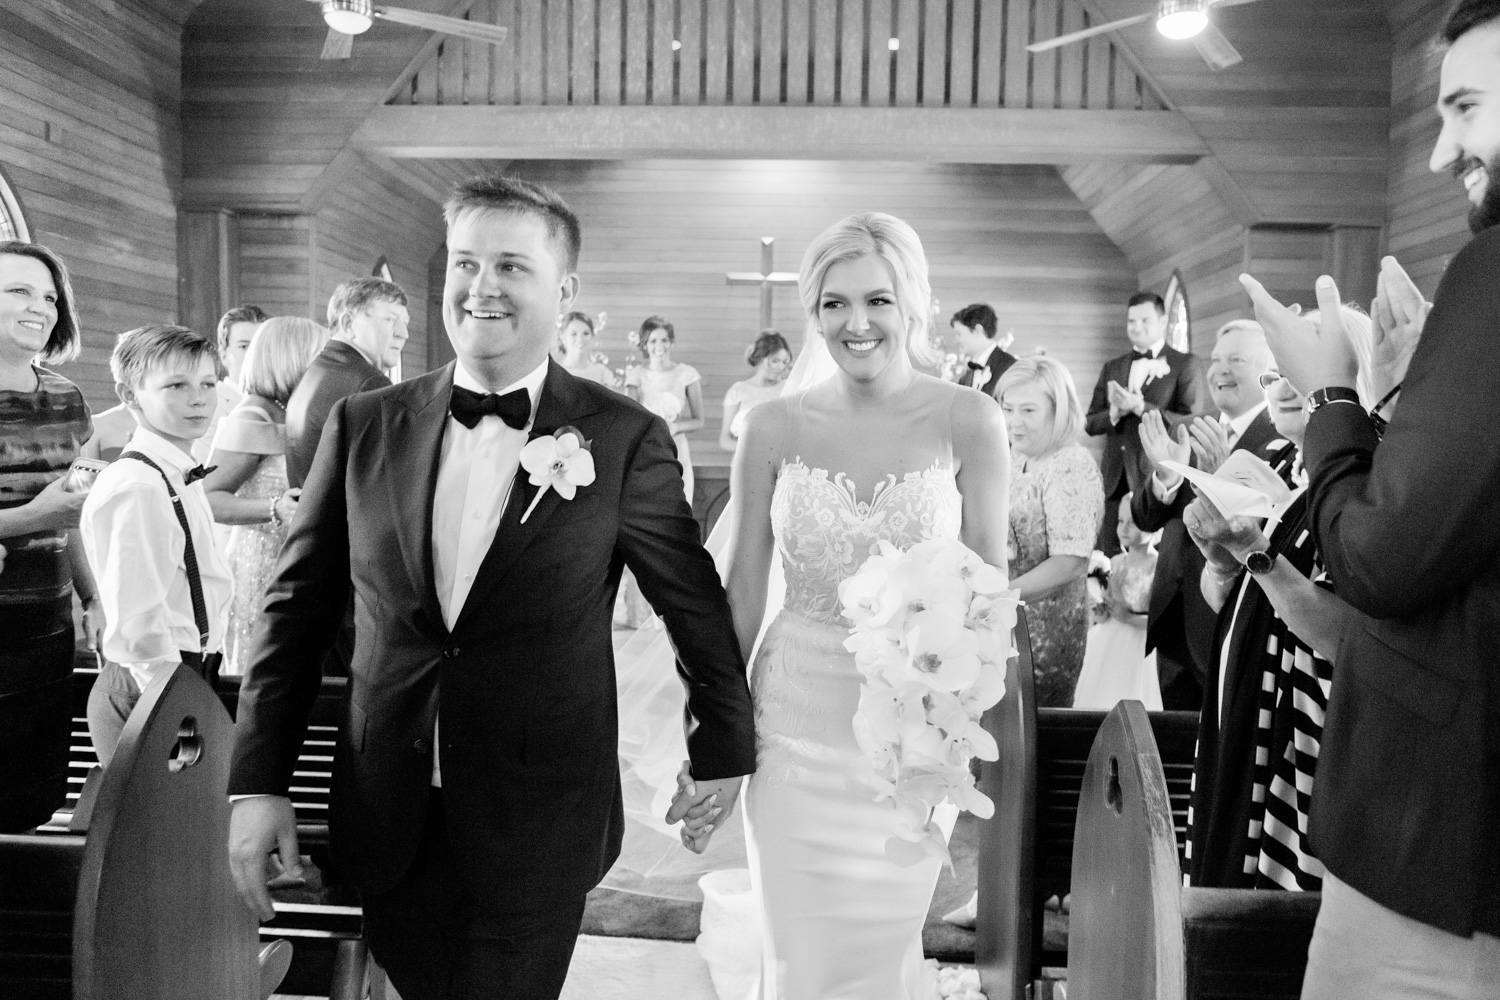 wedding-0127-chapel-walking-excitement-official-happy-brisbane.jpg